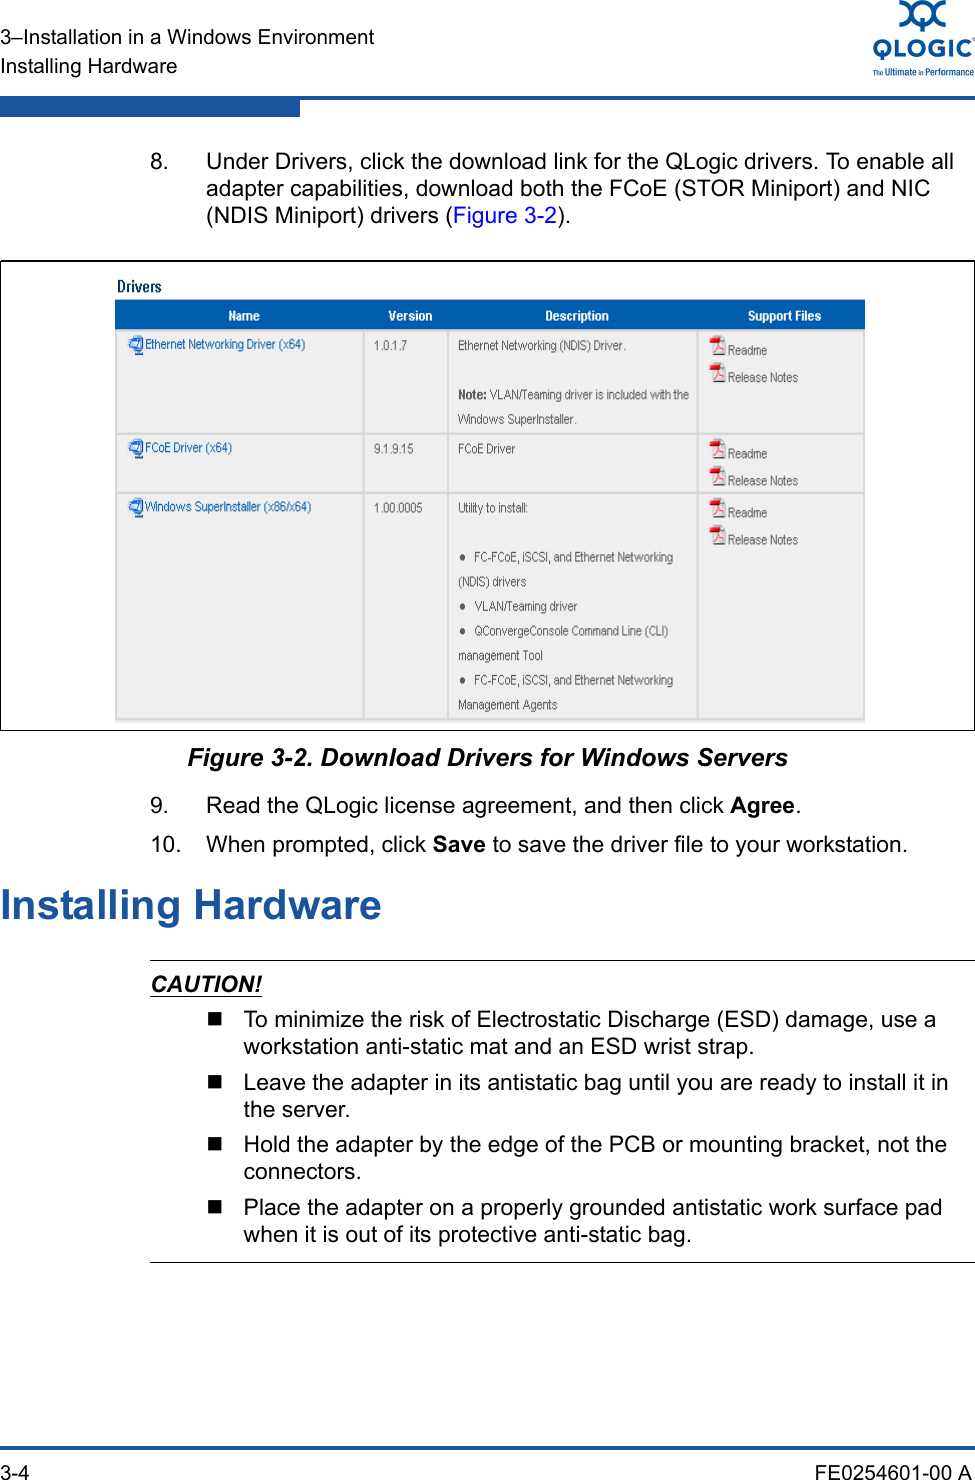 DOWNLOAD DRIVER: SK-NDIS MINIPORT